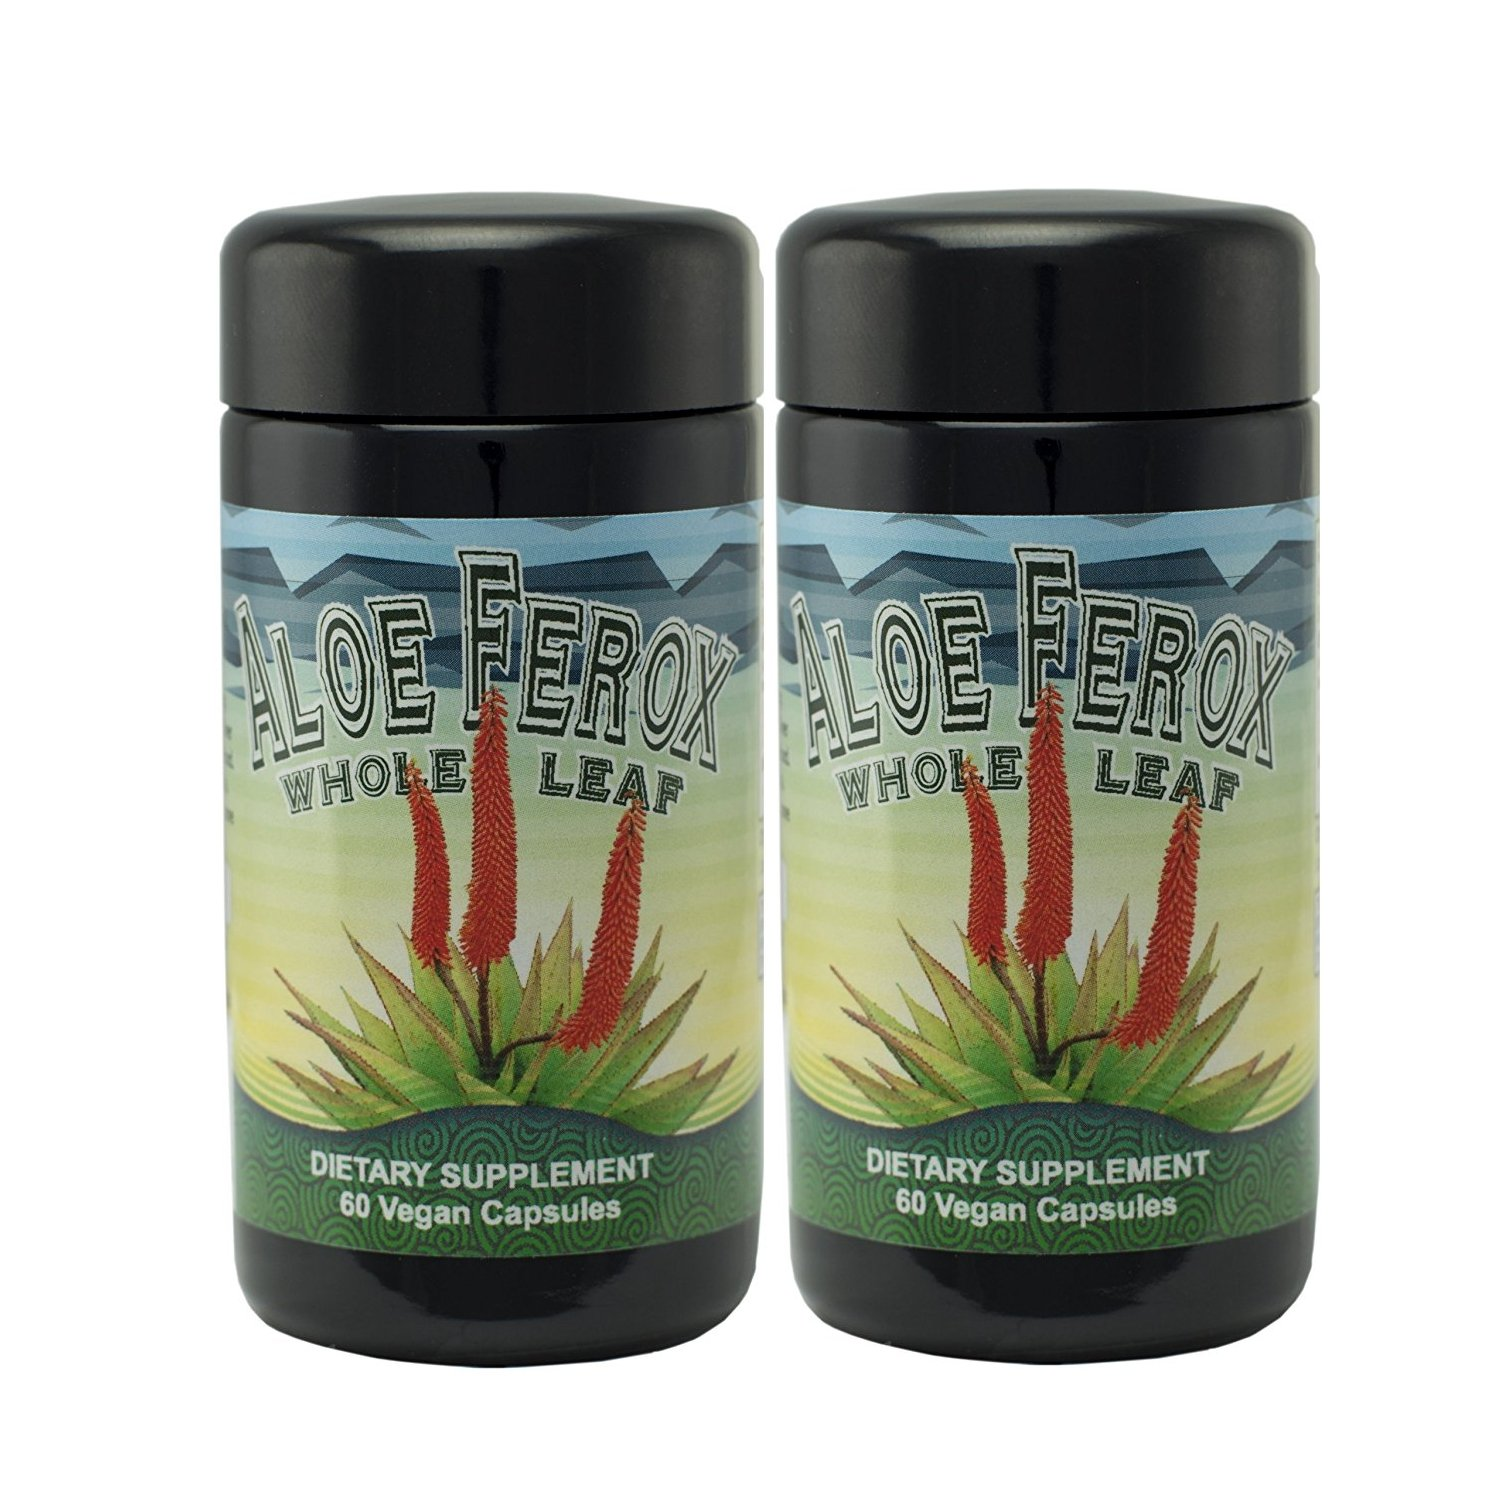 Aloe Ferox Whole Leaf Capsules - 2 Pack by Immunologic Health Systems